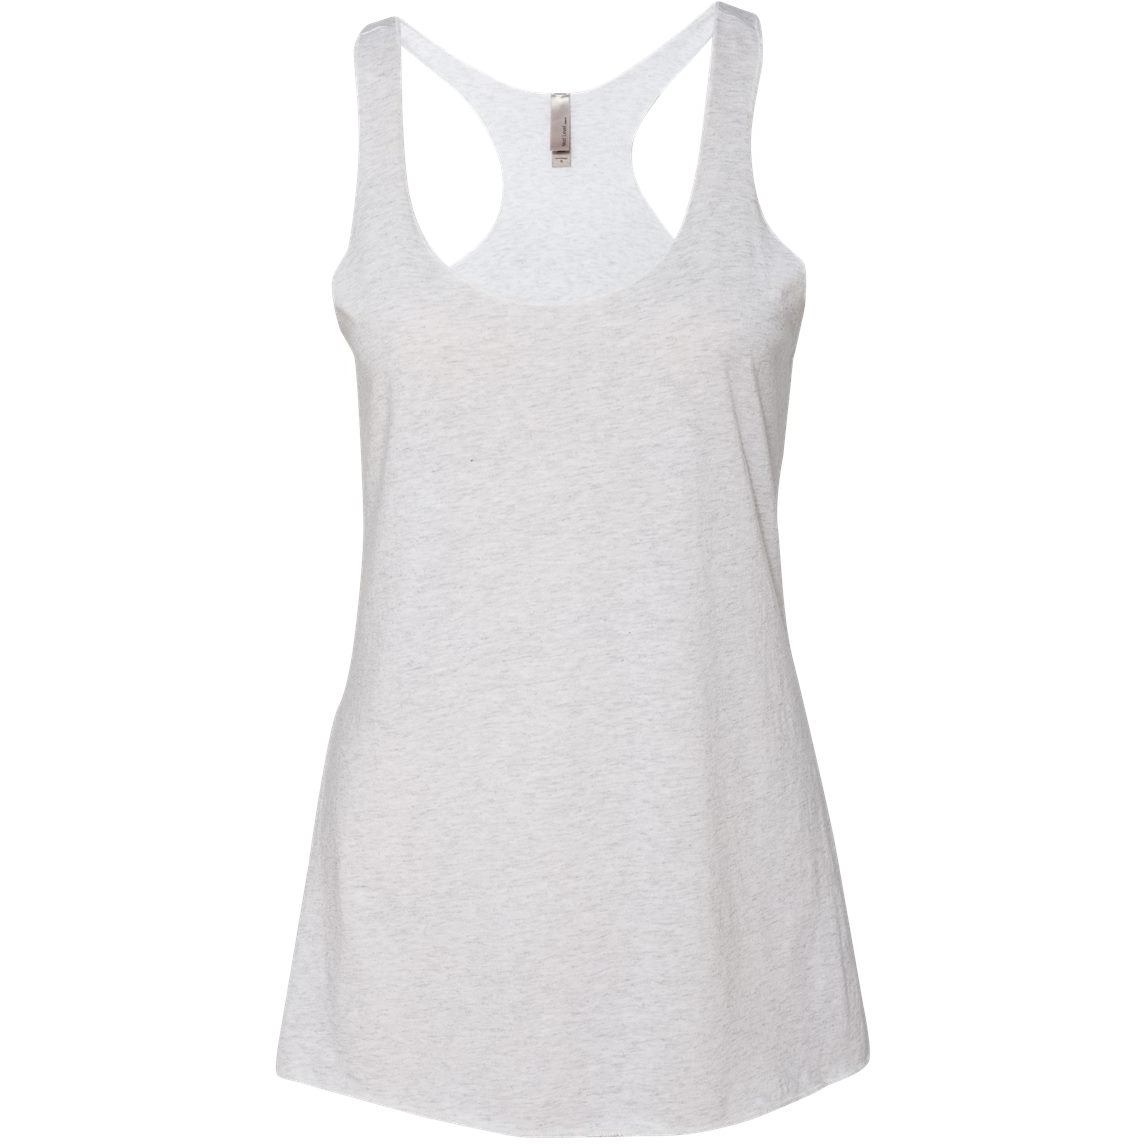 f02646cae5be1 Next Level 6733 Women s Triblend Racerback Tank - Heather White ...